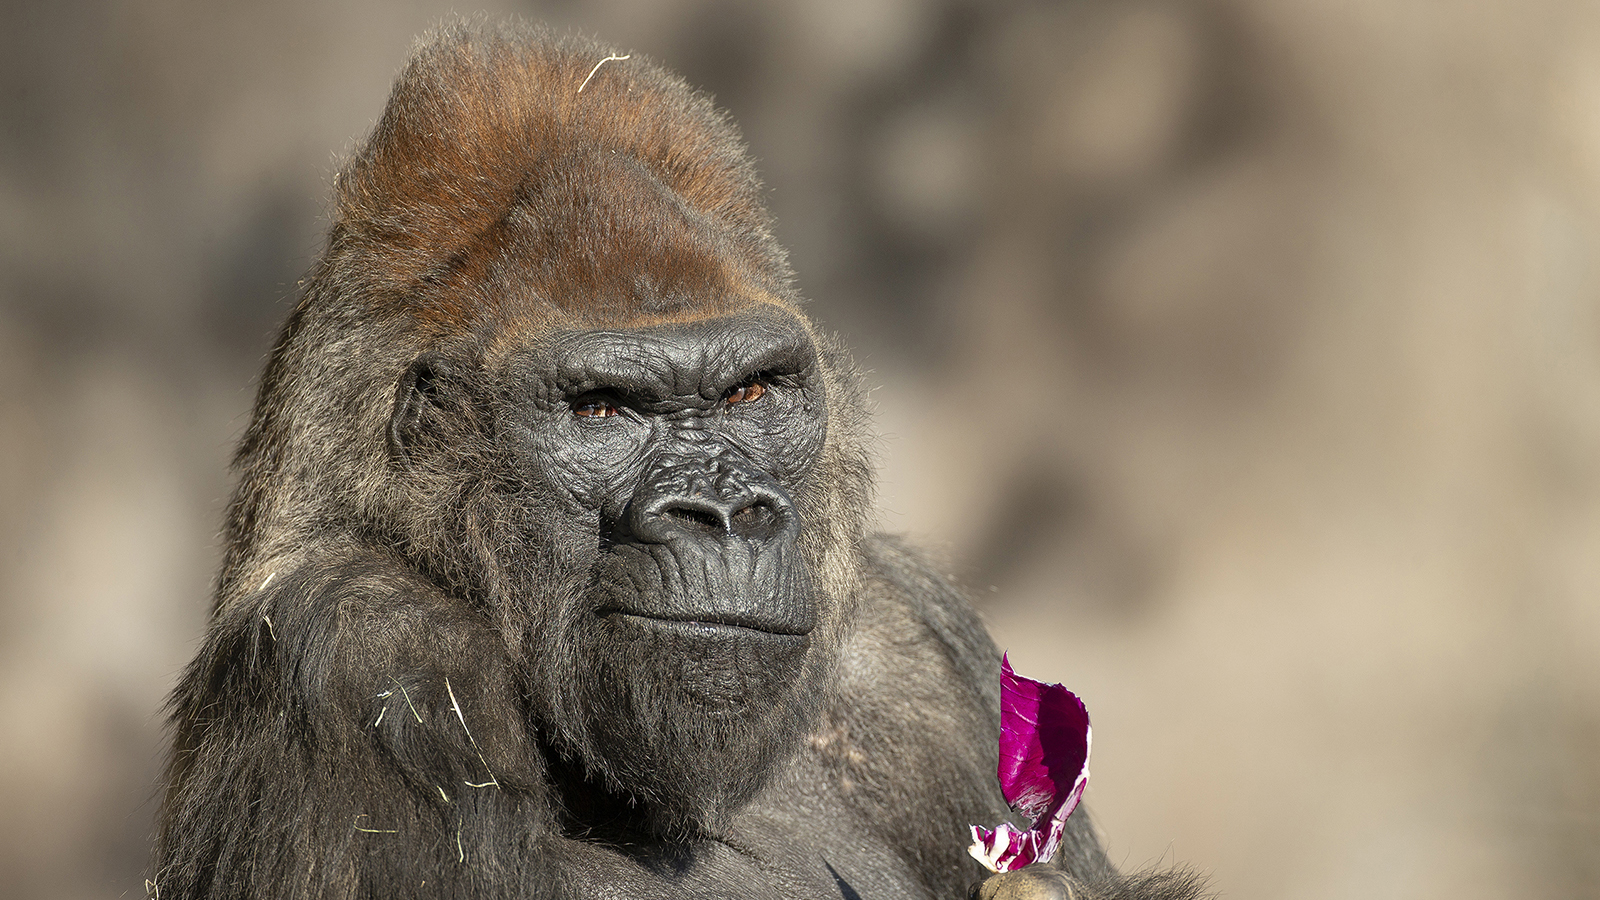 Gorillas at the San Diego Zoo made a full recovery from Covid-19